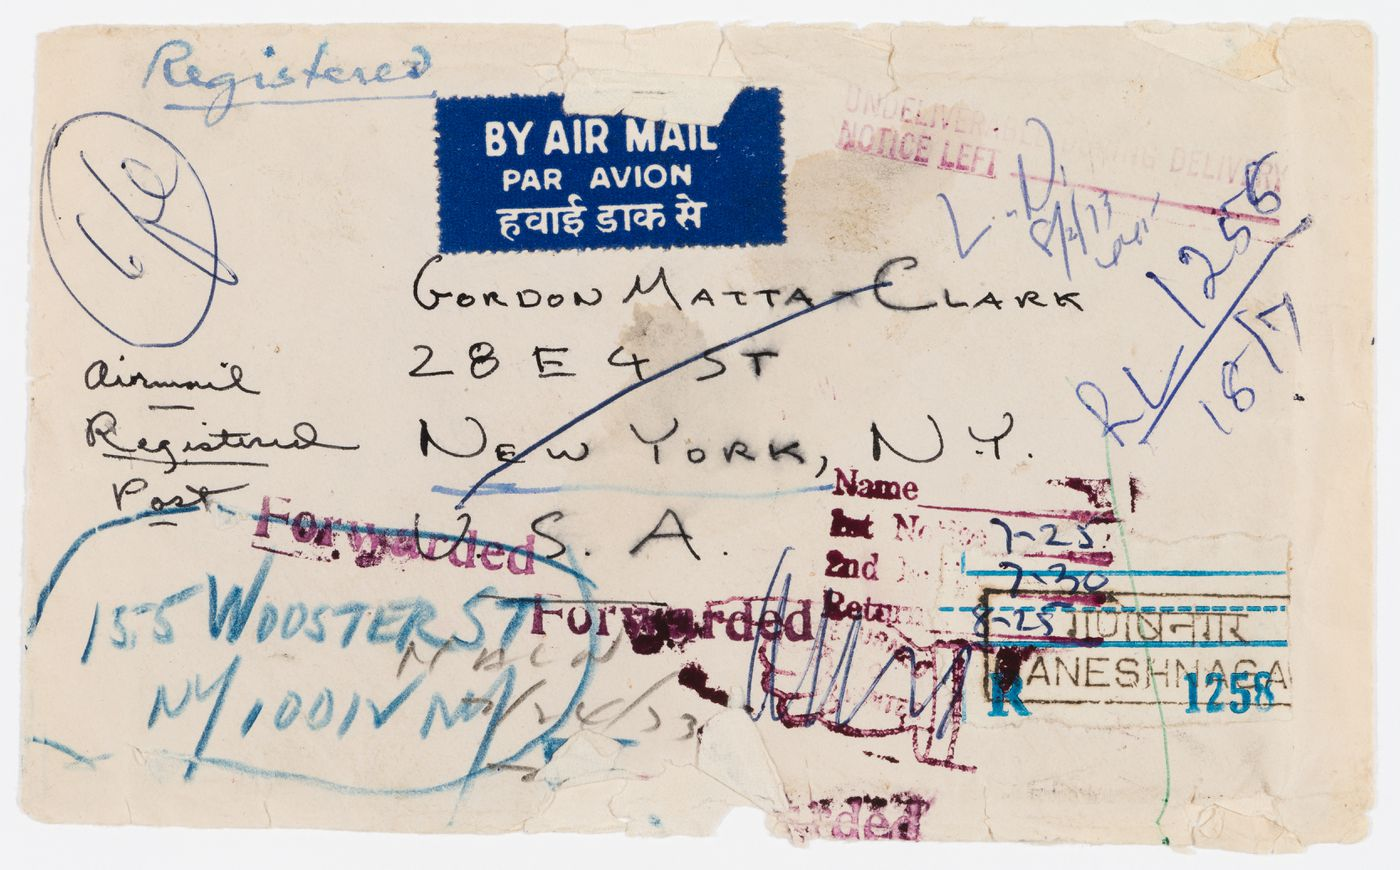 Envelope for a 2-page letter from Alan Saret to Gordon Matta-Clark